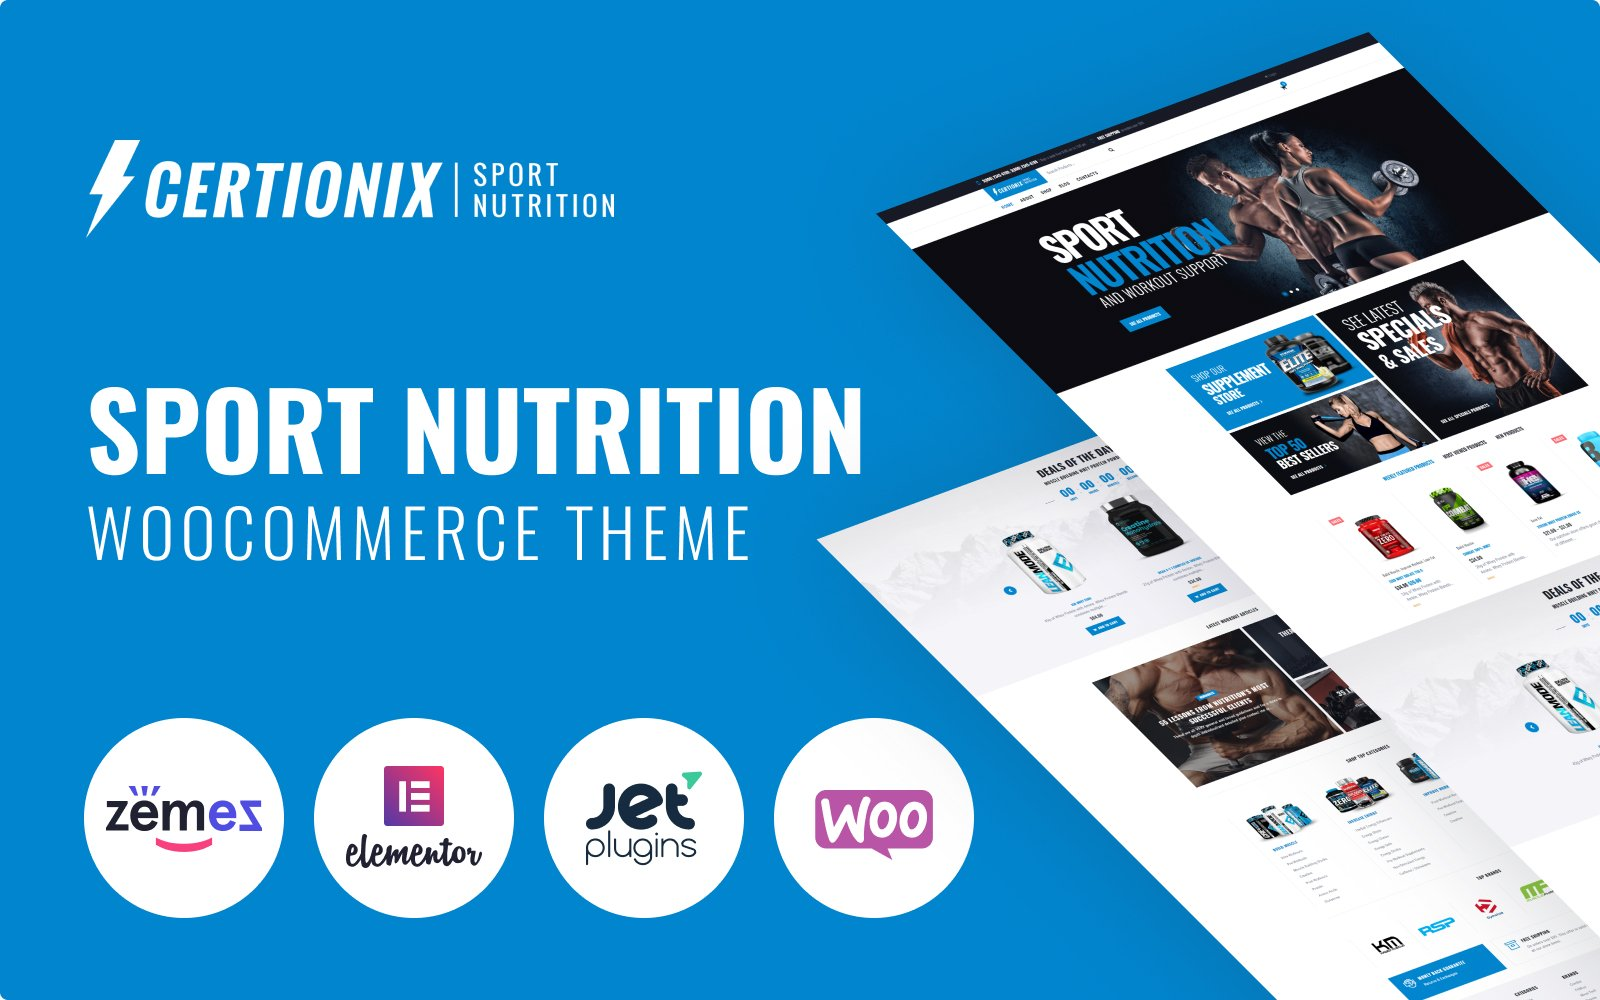 Certionix - Sport Nutrition Website Template with Woocommerce and Elementor Tema WooCommerce №65870